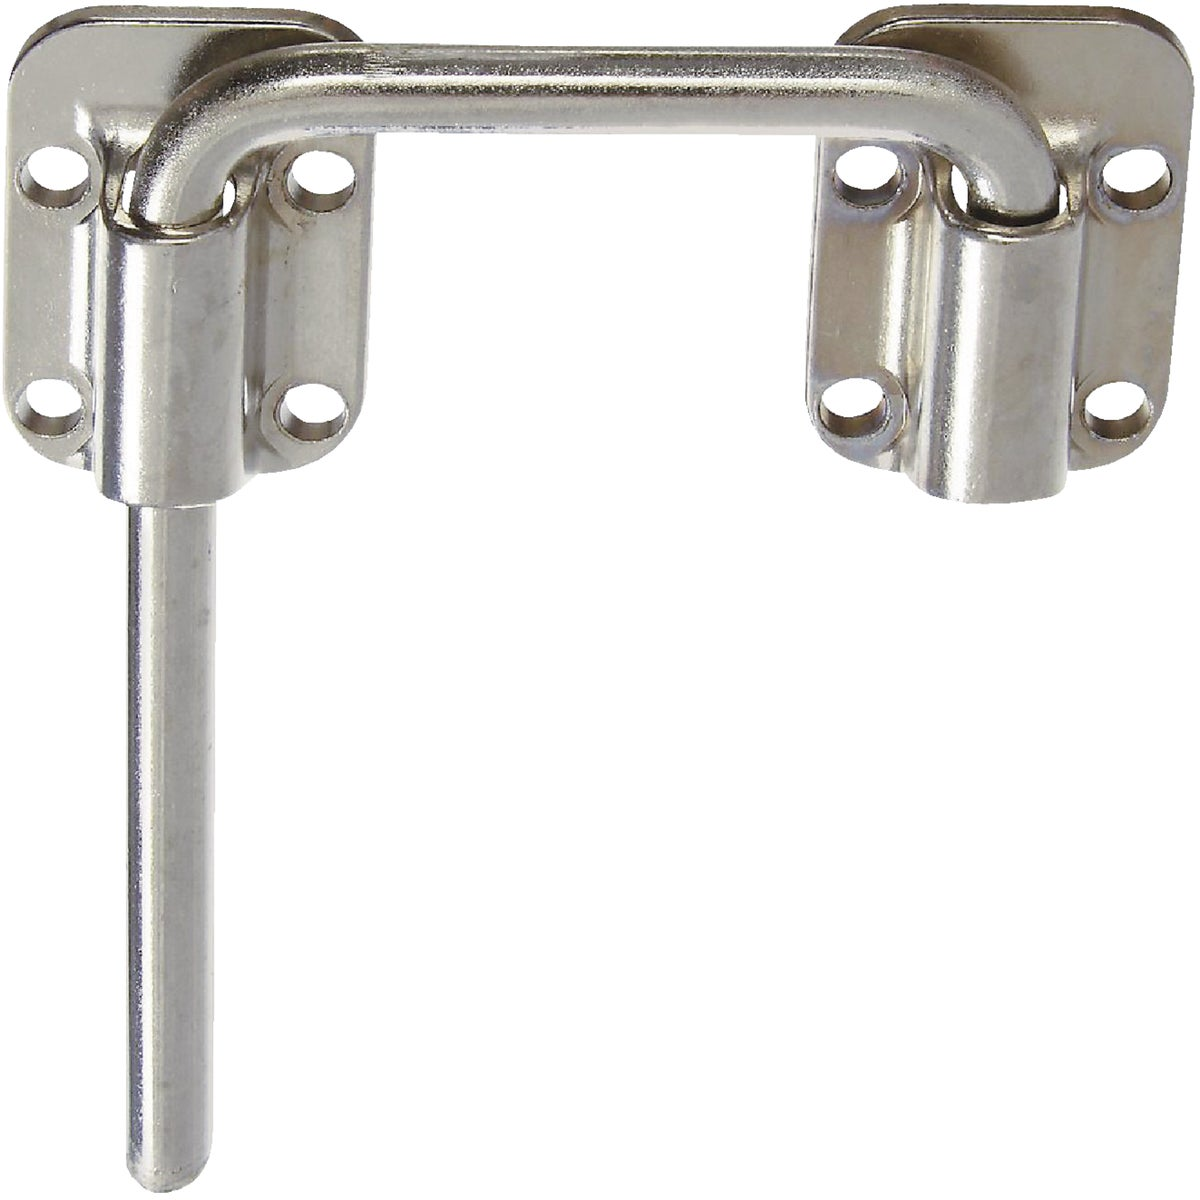 "2-1/2"" NCKL DOOR LATCH - N238998 by National Mfg Co"